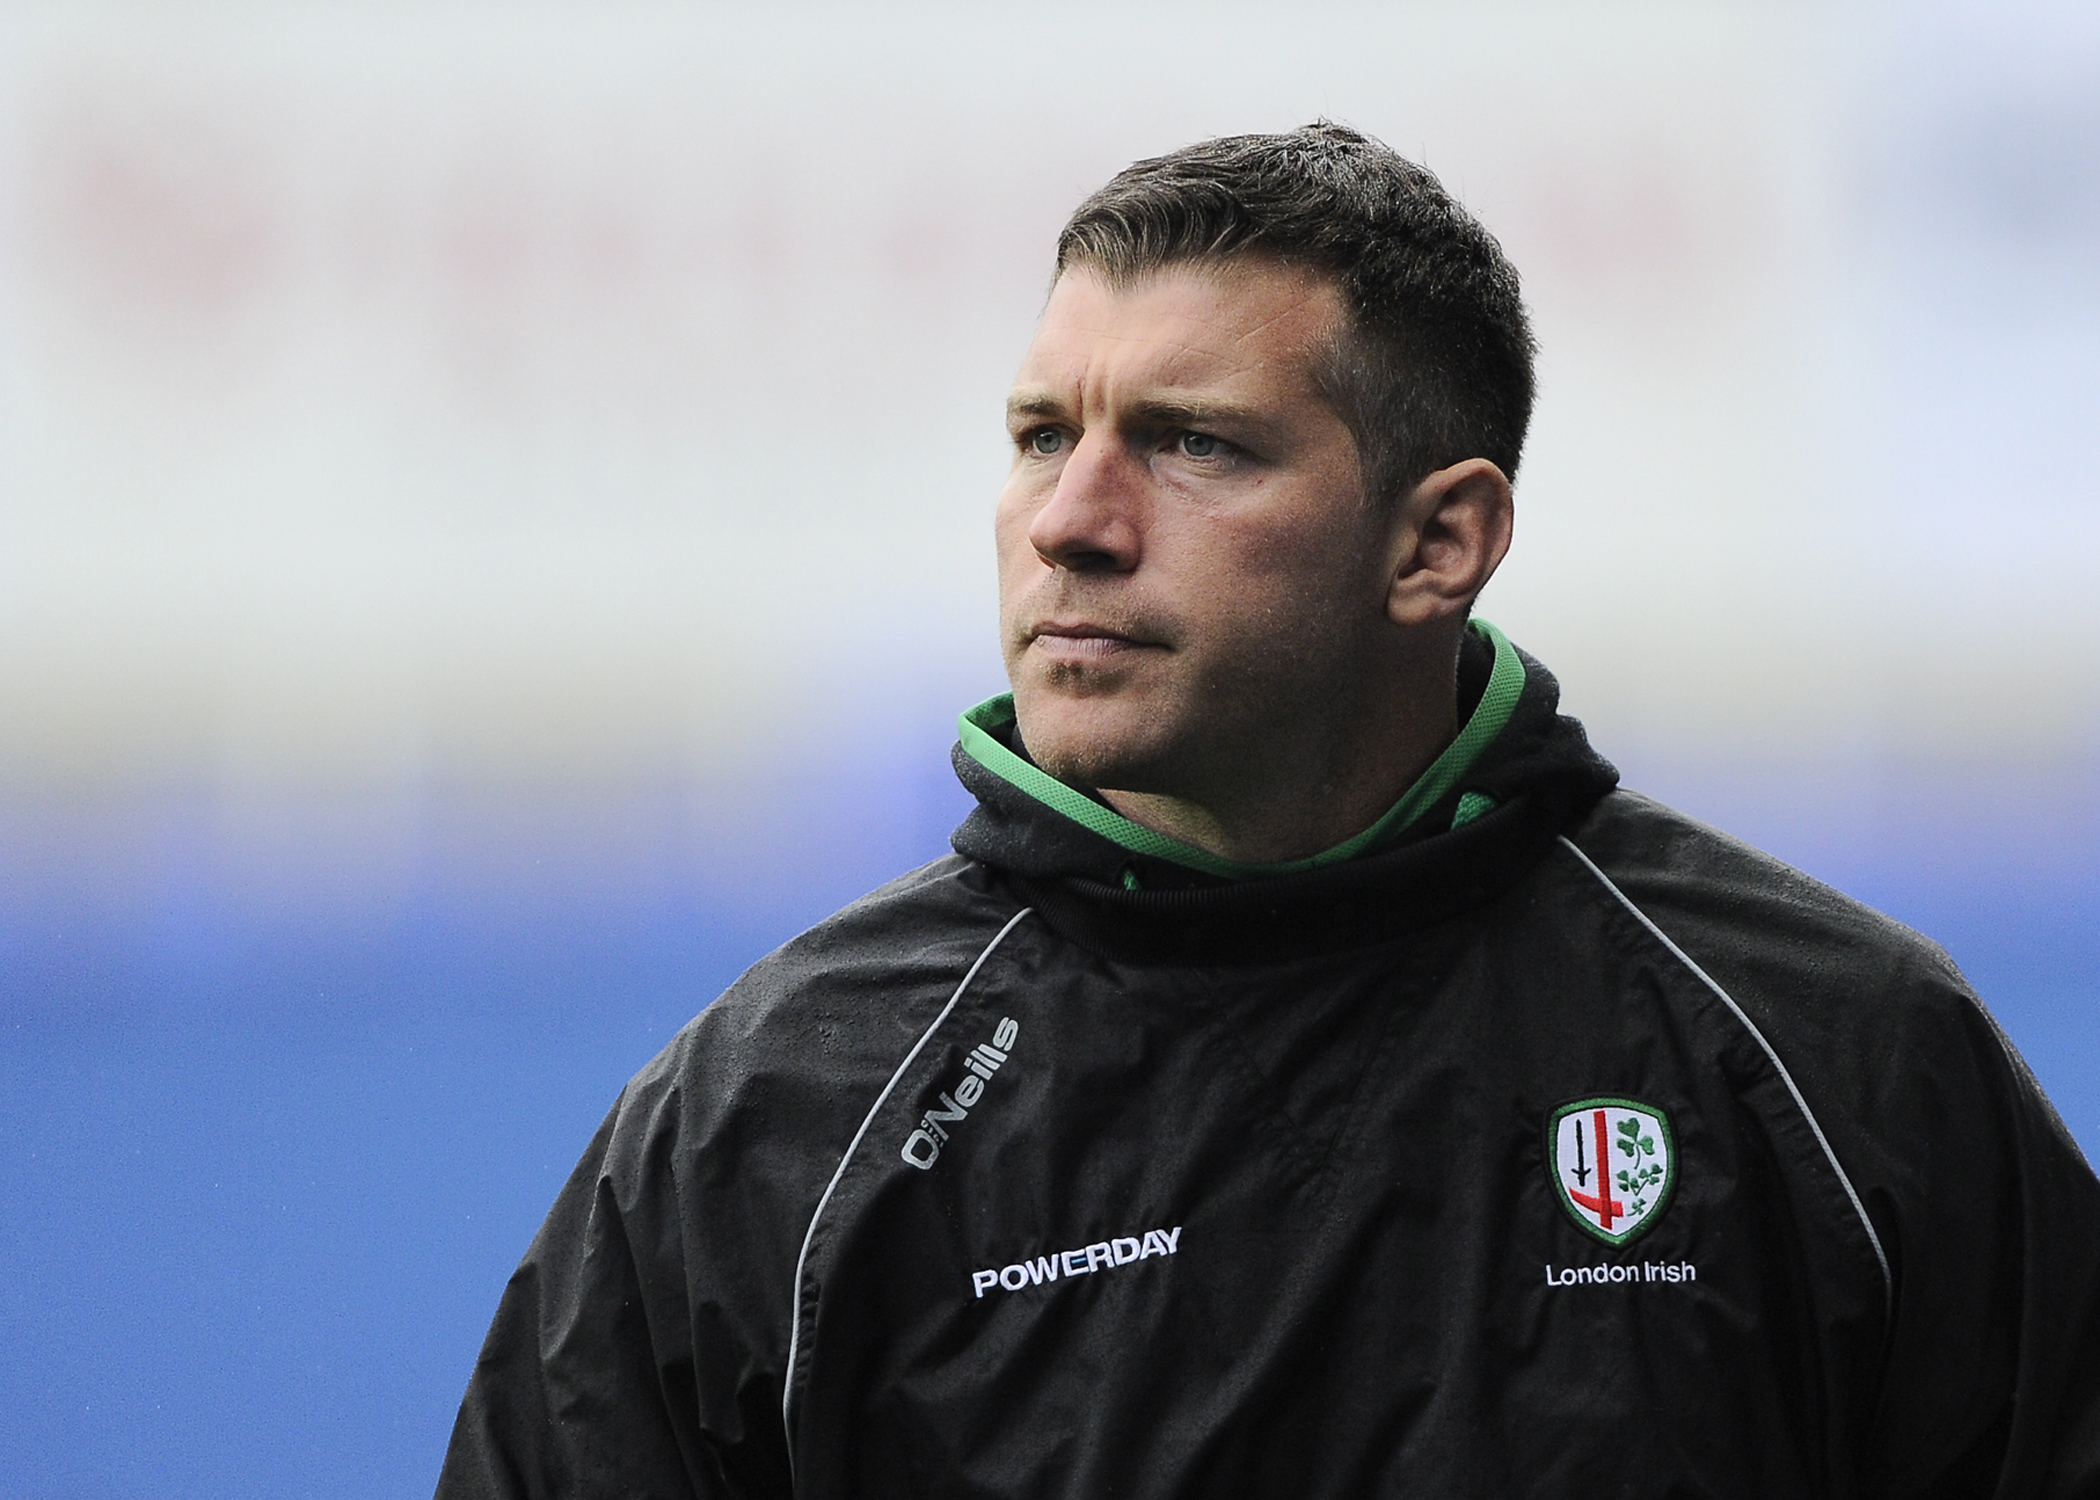 London Irish director of rugby, Nick Kennedy.